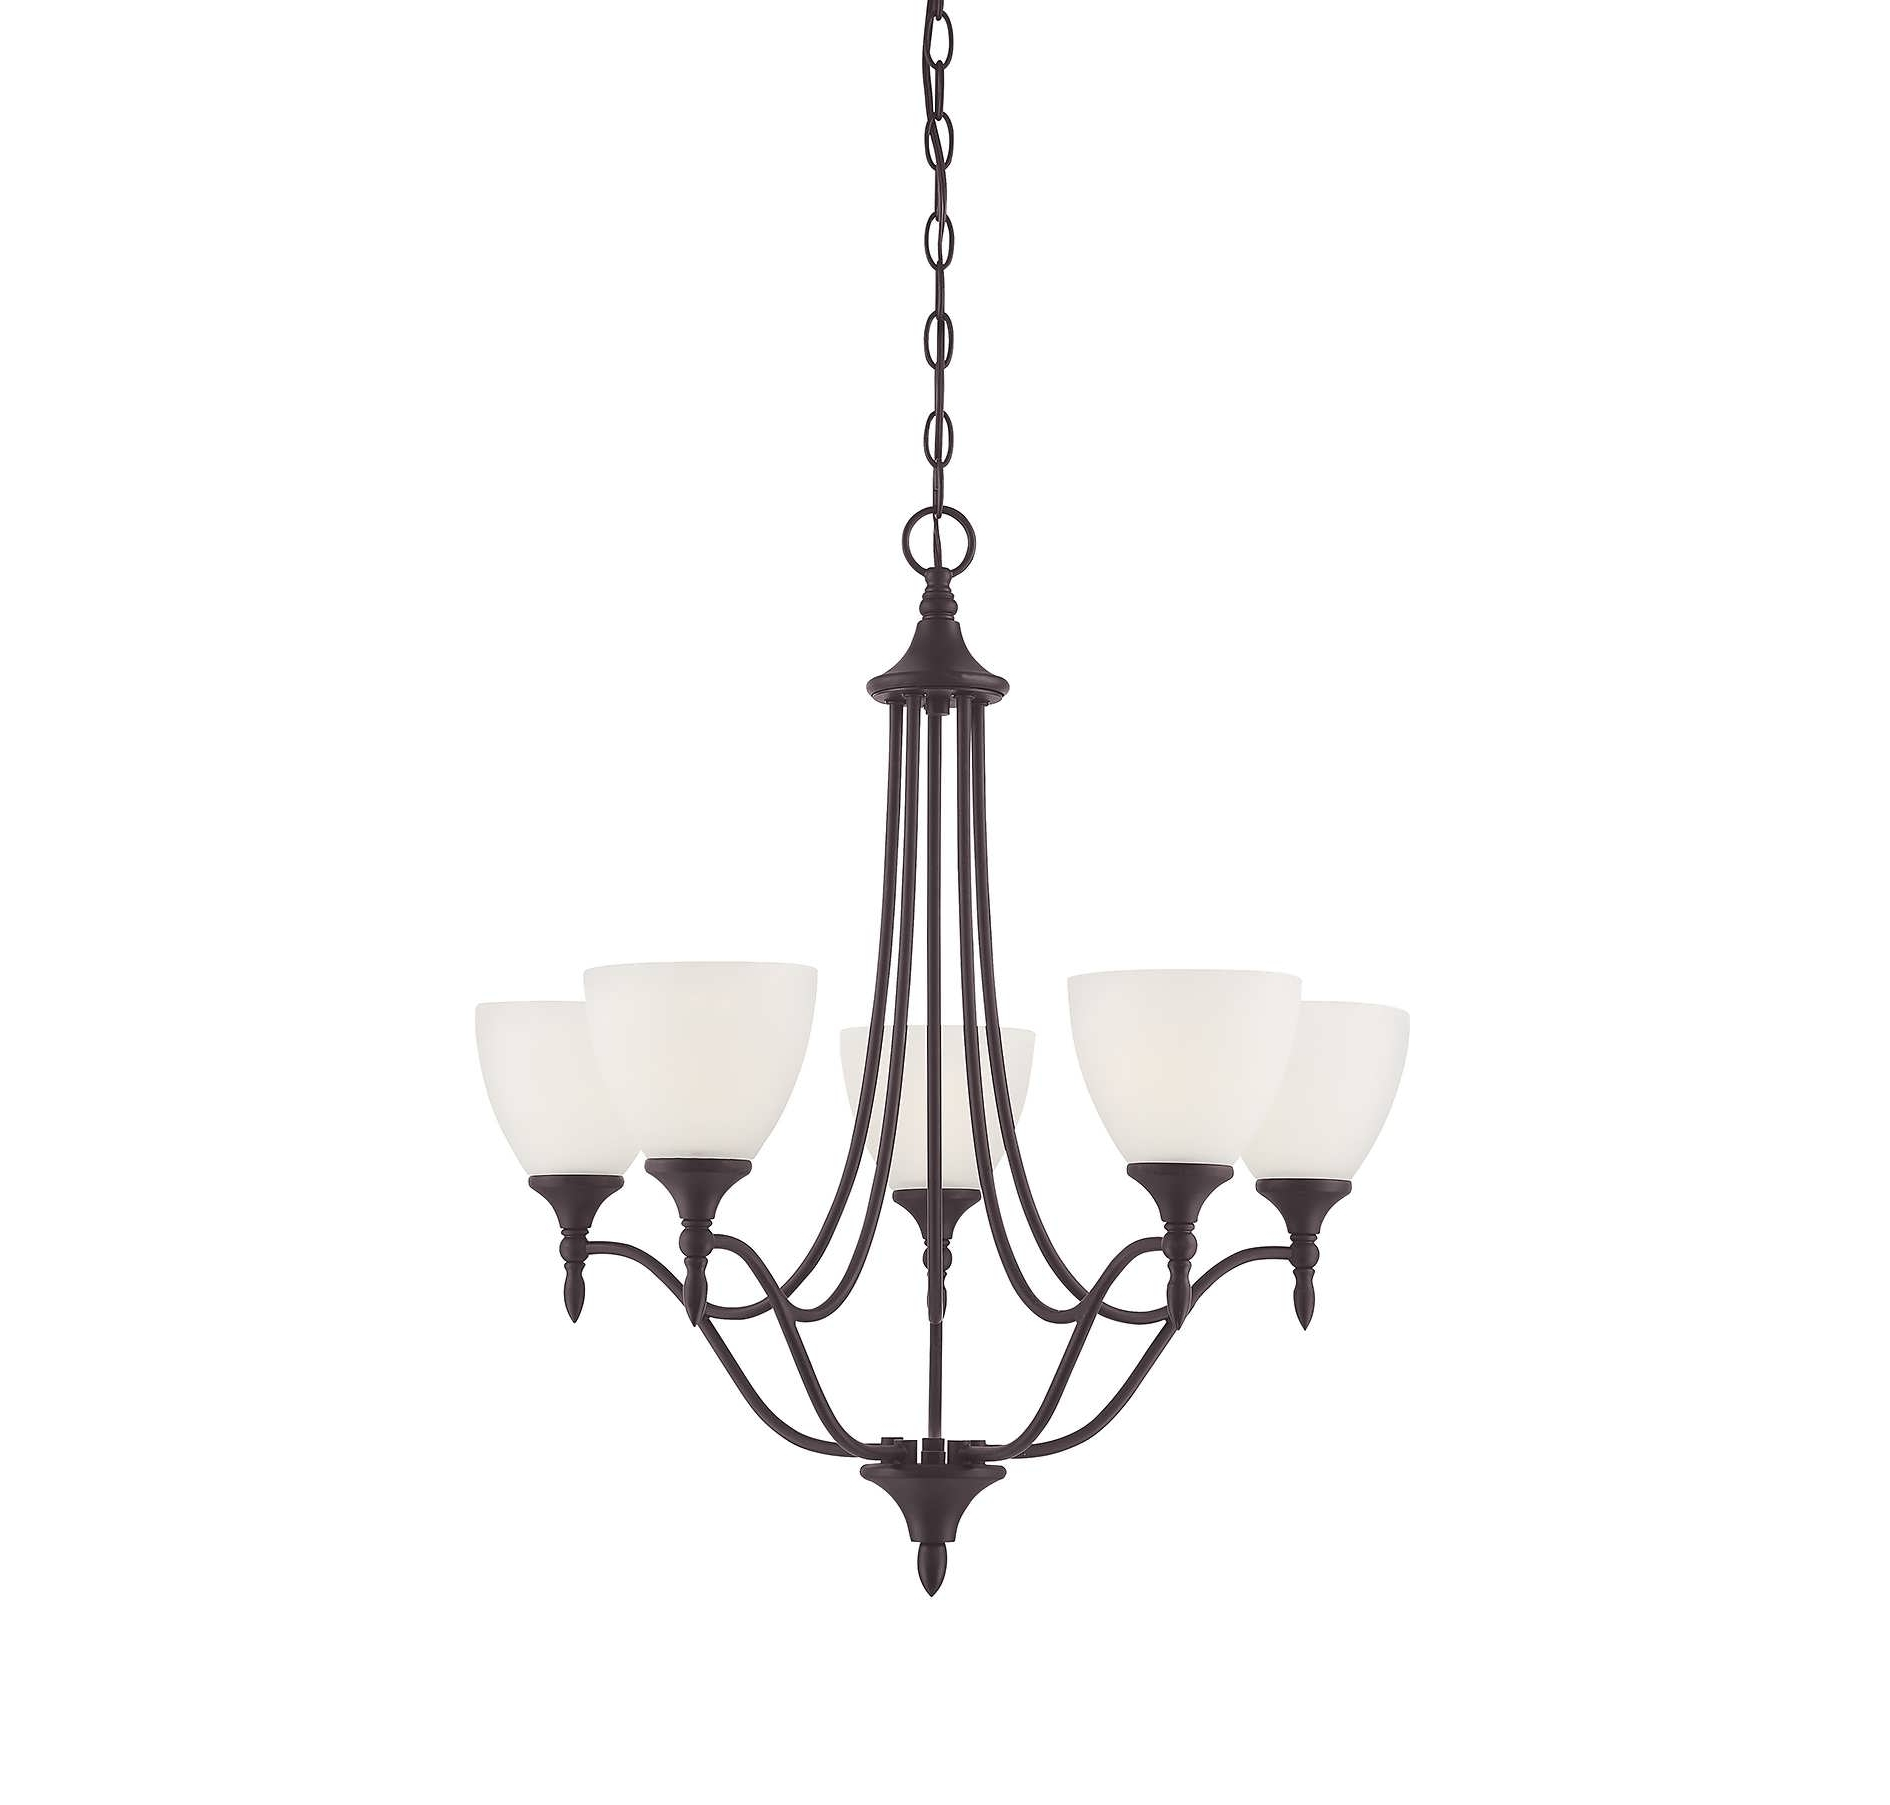 Most Current Chandelier Accessories For Light : Lighting Bulbs Watt Led Light Bulb Candle Chandelier Halogen (View 2 of 20)